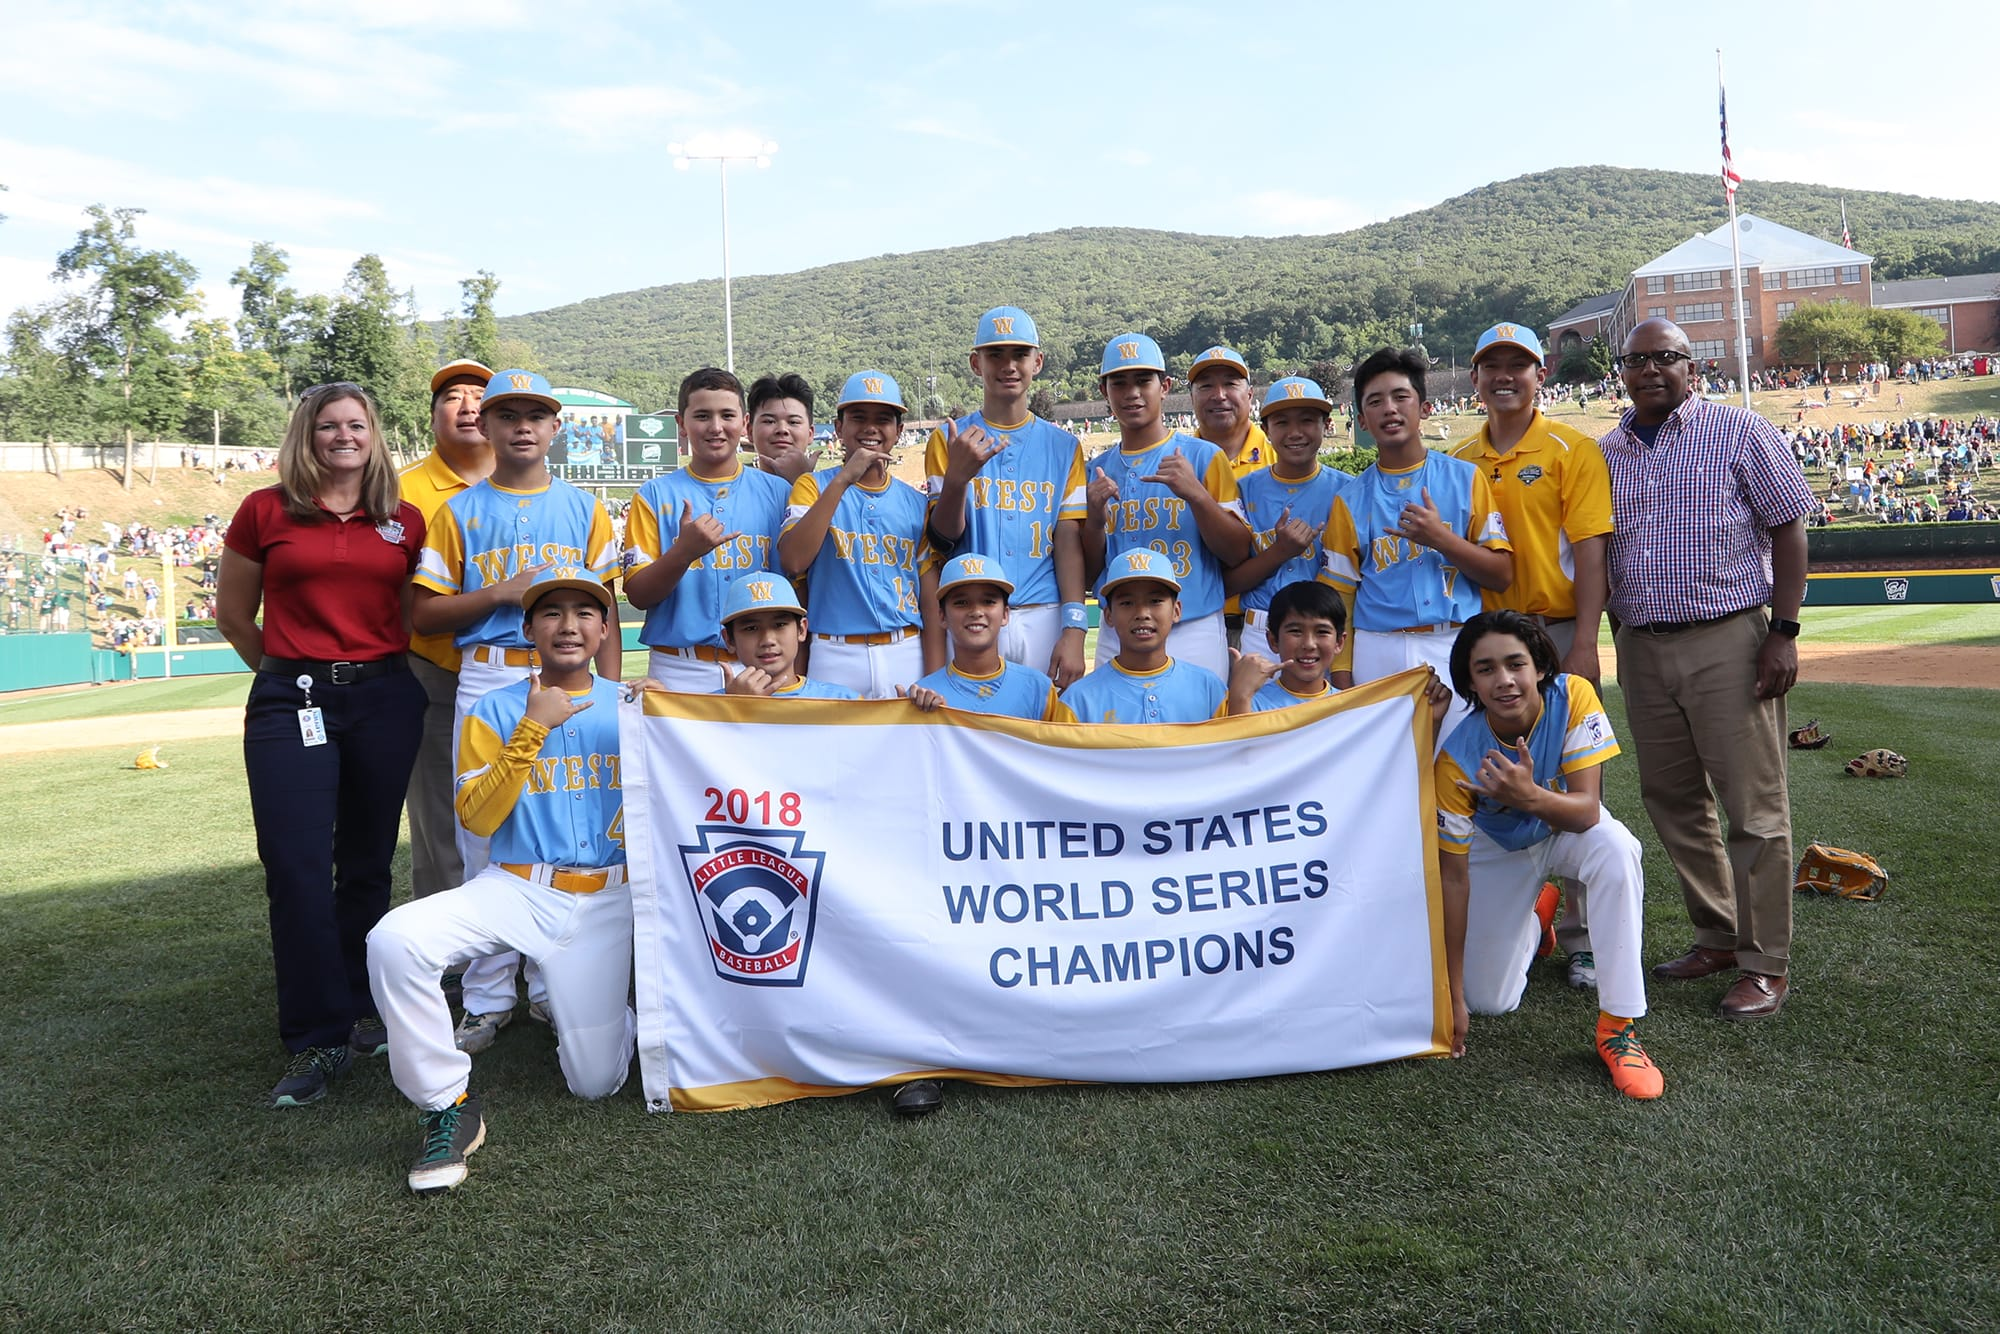 Honolulu Little Leaguers Blank Peachtree City American 3-0